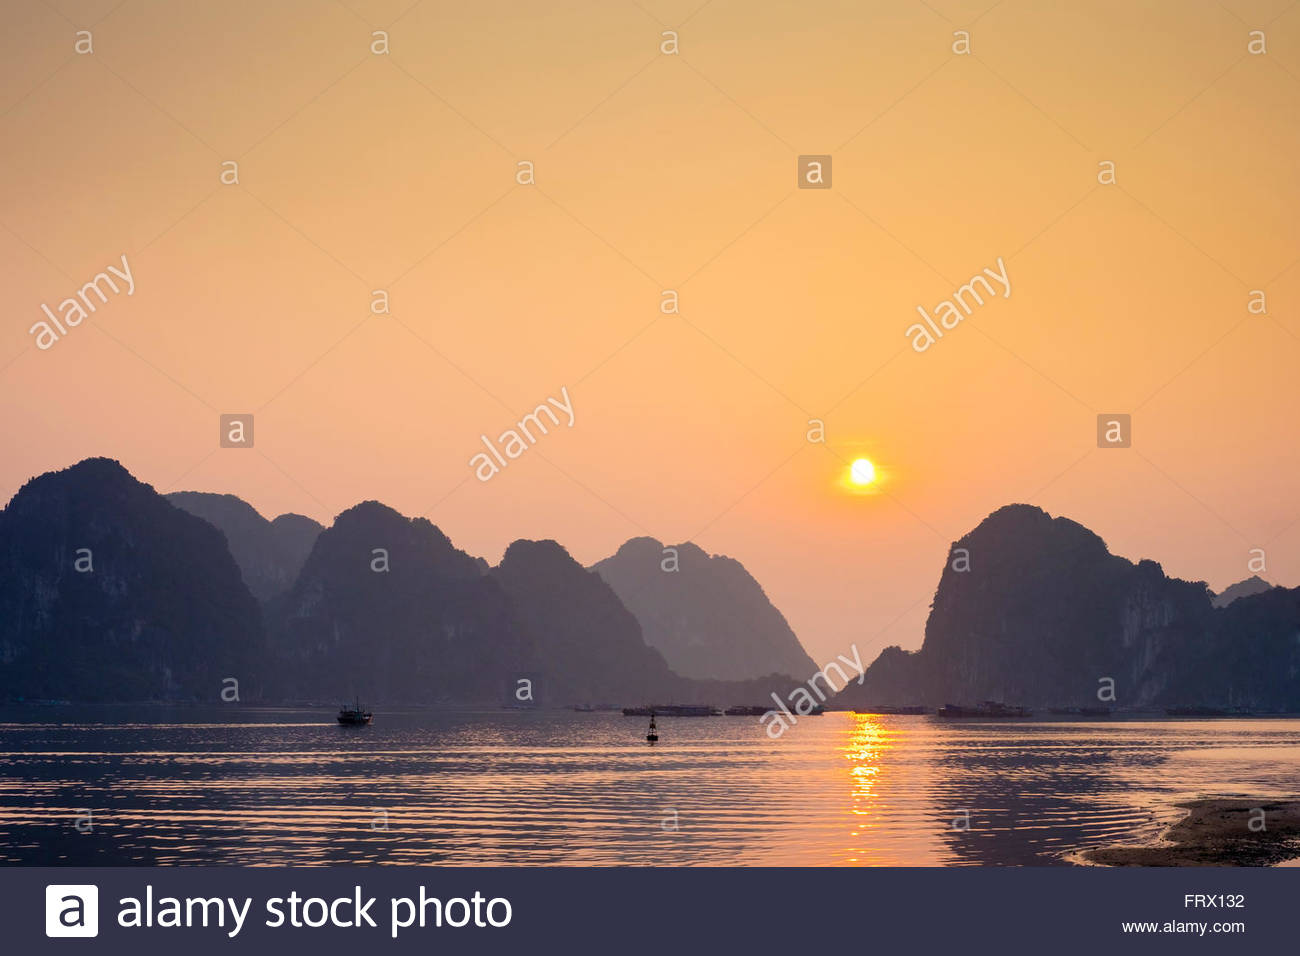 Sunset over karst mountains in Ha Long Bay, Quang Ninh Province, Vietnam Stock Photo